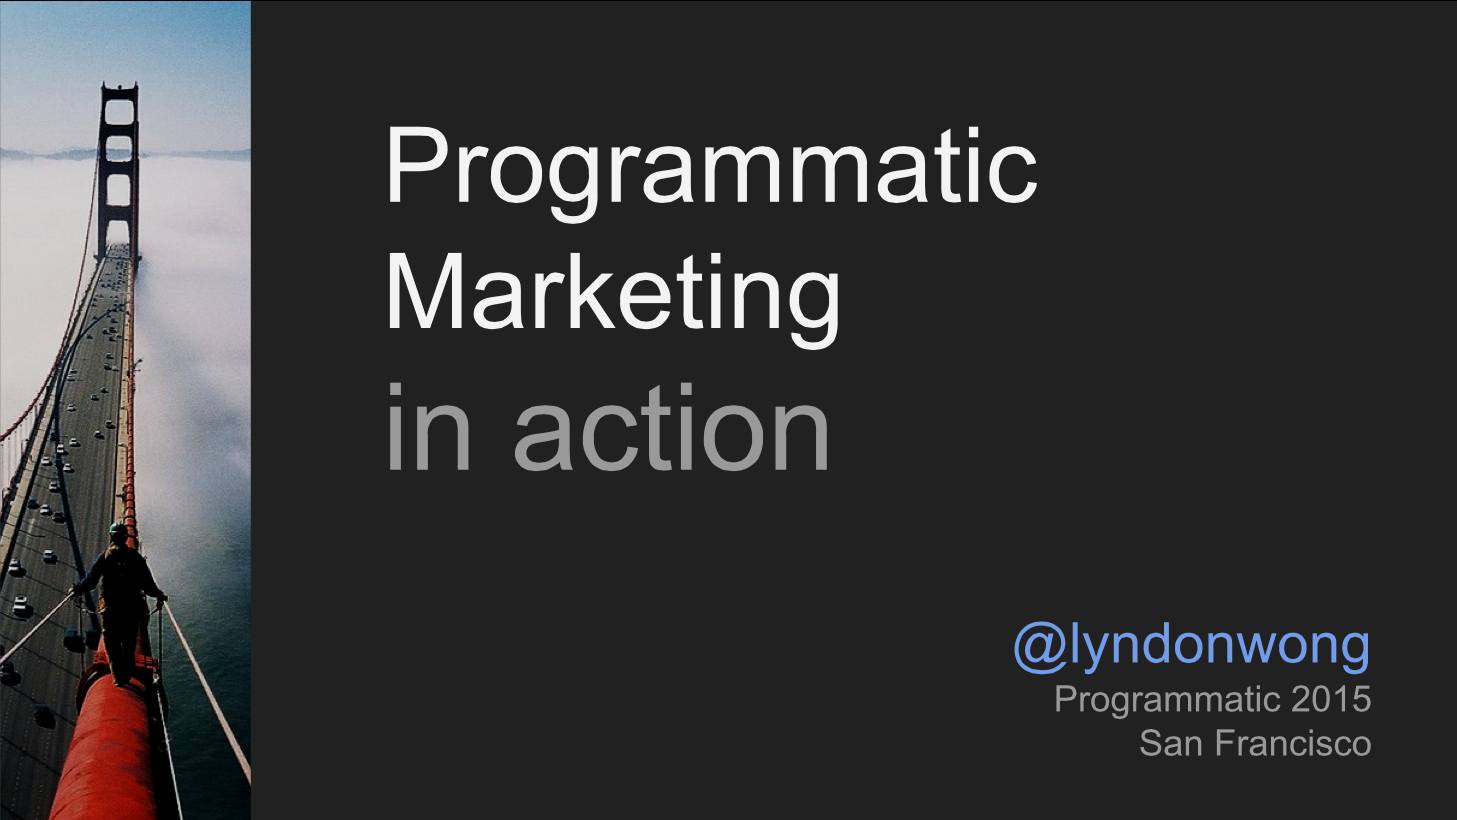 Programmatic Marketing in action 2015